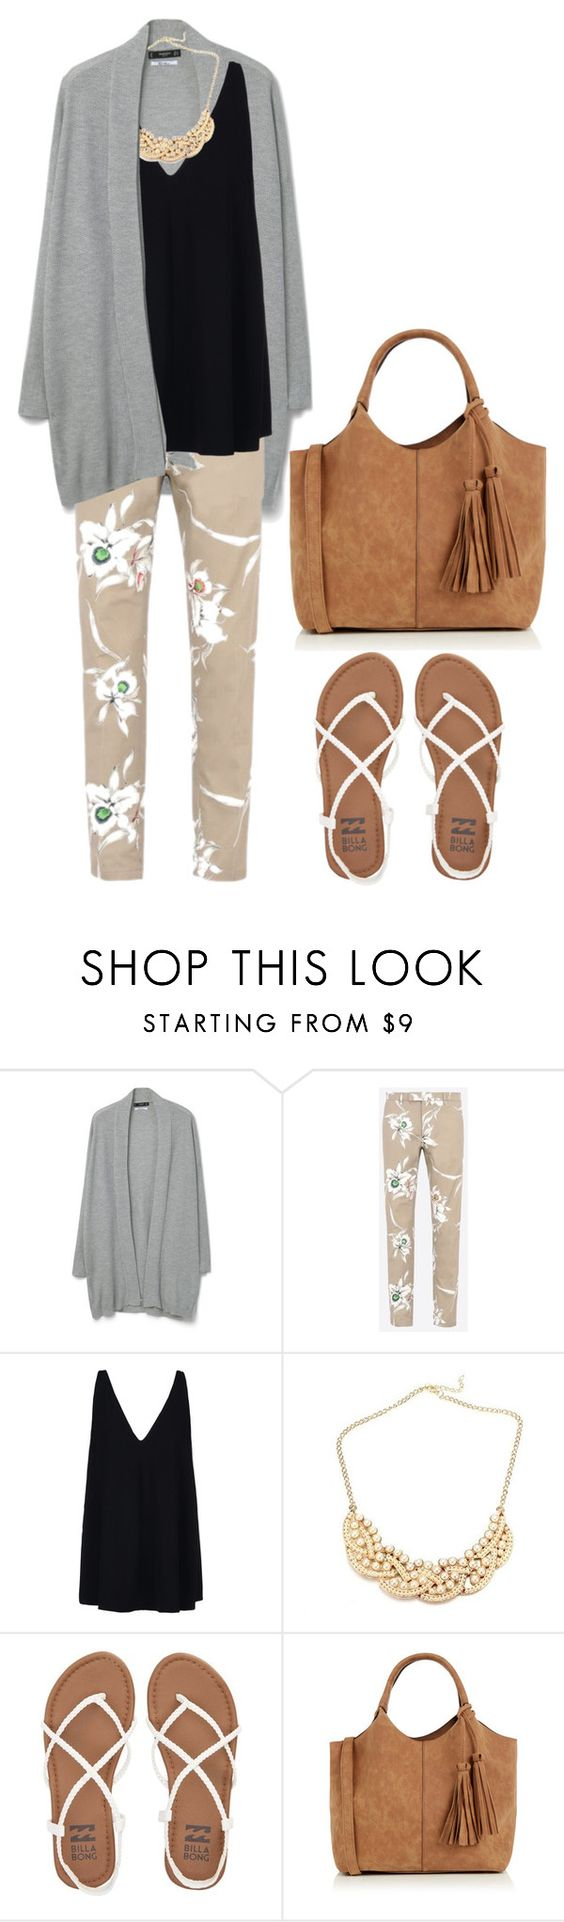 """OOTD- IRELAND BOUND!"" by kirathelovergirl ❤ liked on Polyvore featuring MANGO, Valentino, STELLA McCARTNEY, Billabong and Oasis"